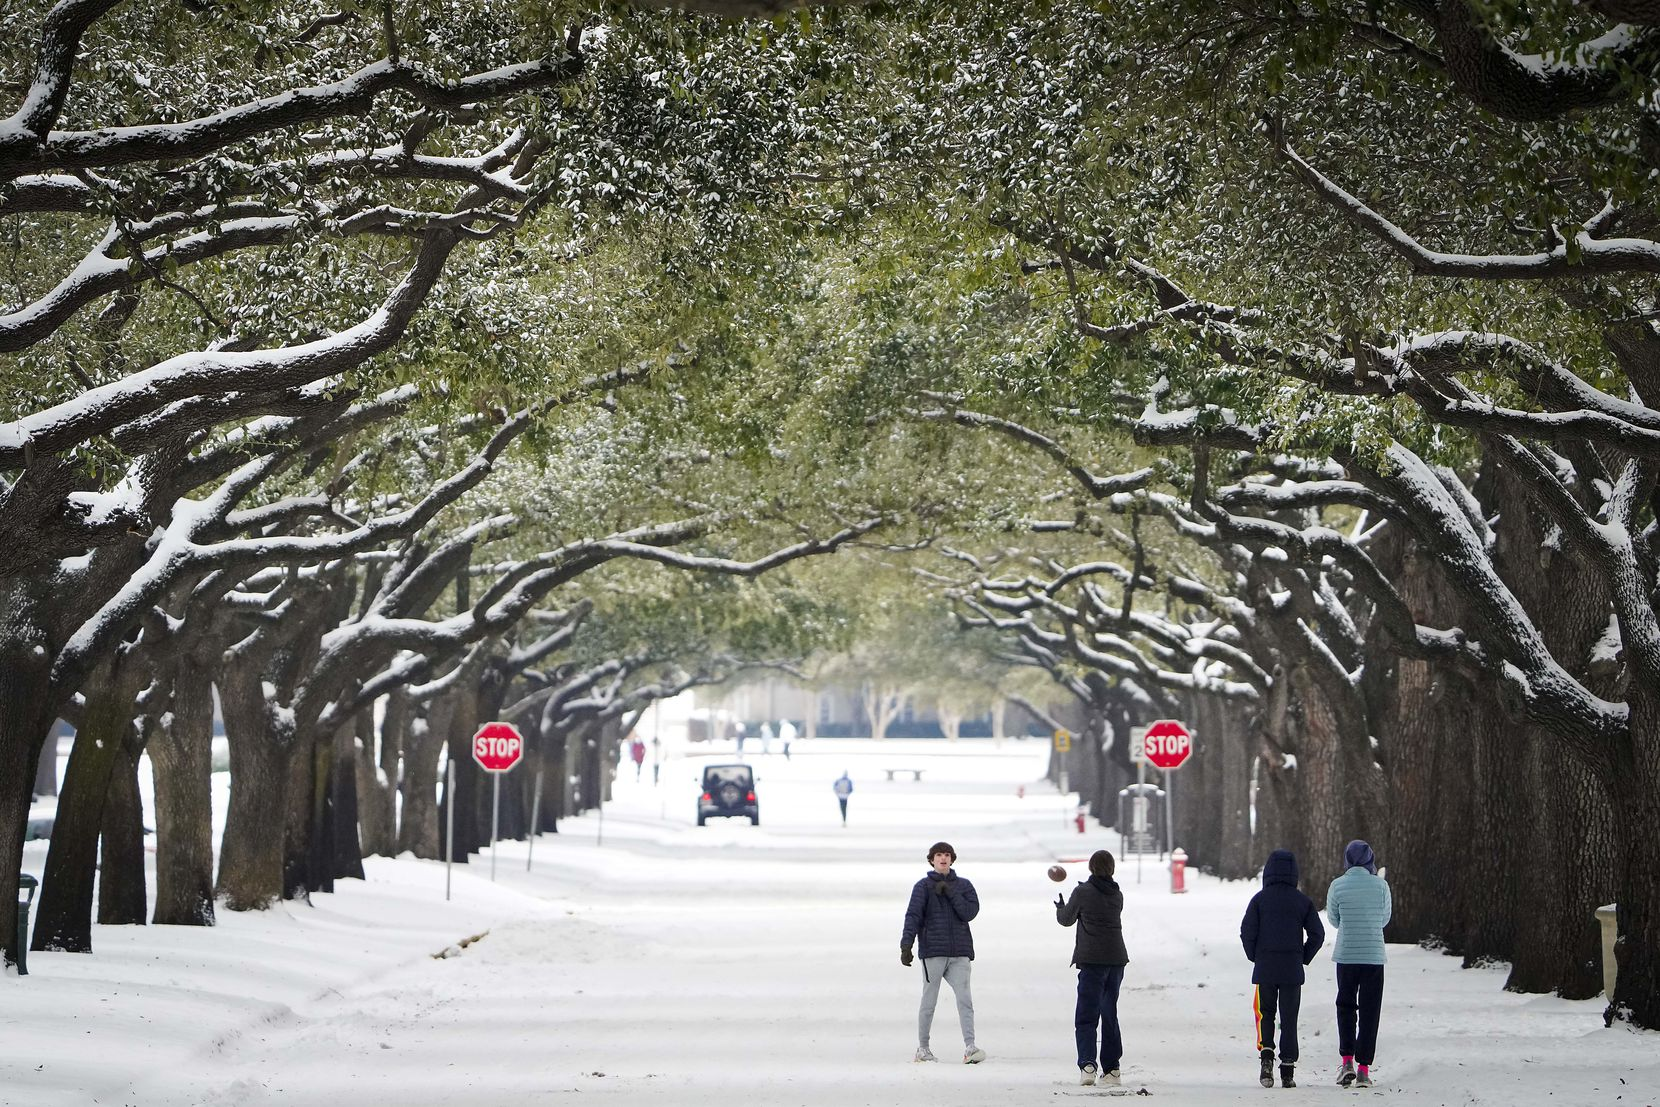 People toss a football on Bishop Boulevard on the SMU campus after a second winter storm brought more snow and continued freezing temperatures to North Texas on Wednesday, Feb. 17, 2021, in Dallas.